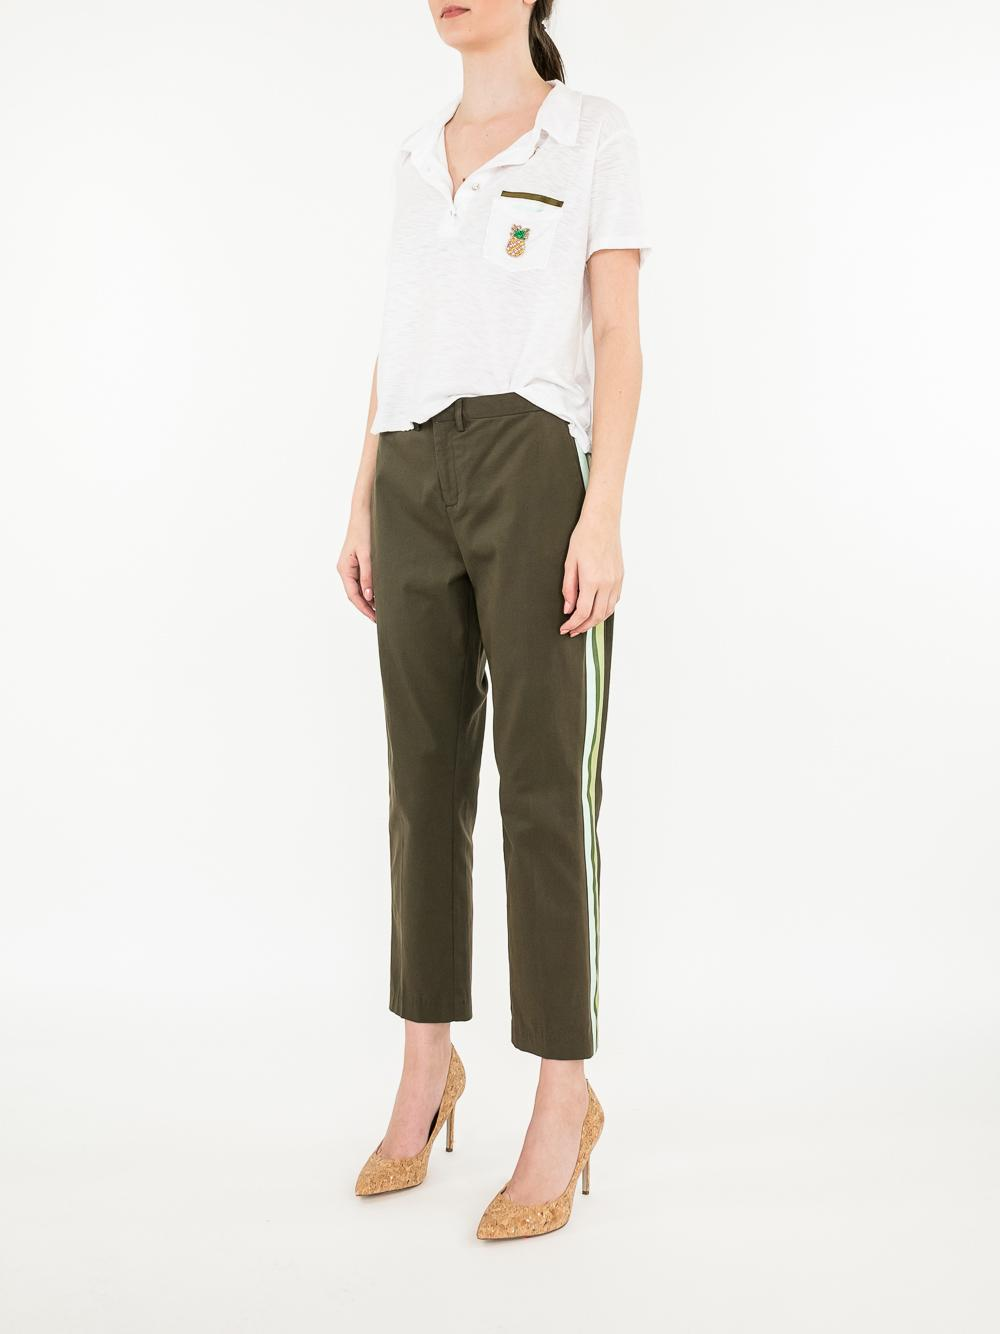 St Honore Side Stripe Pant